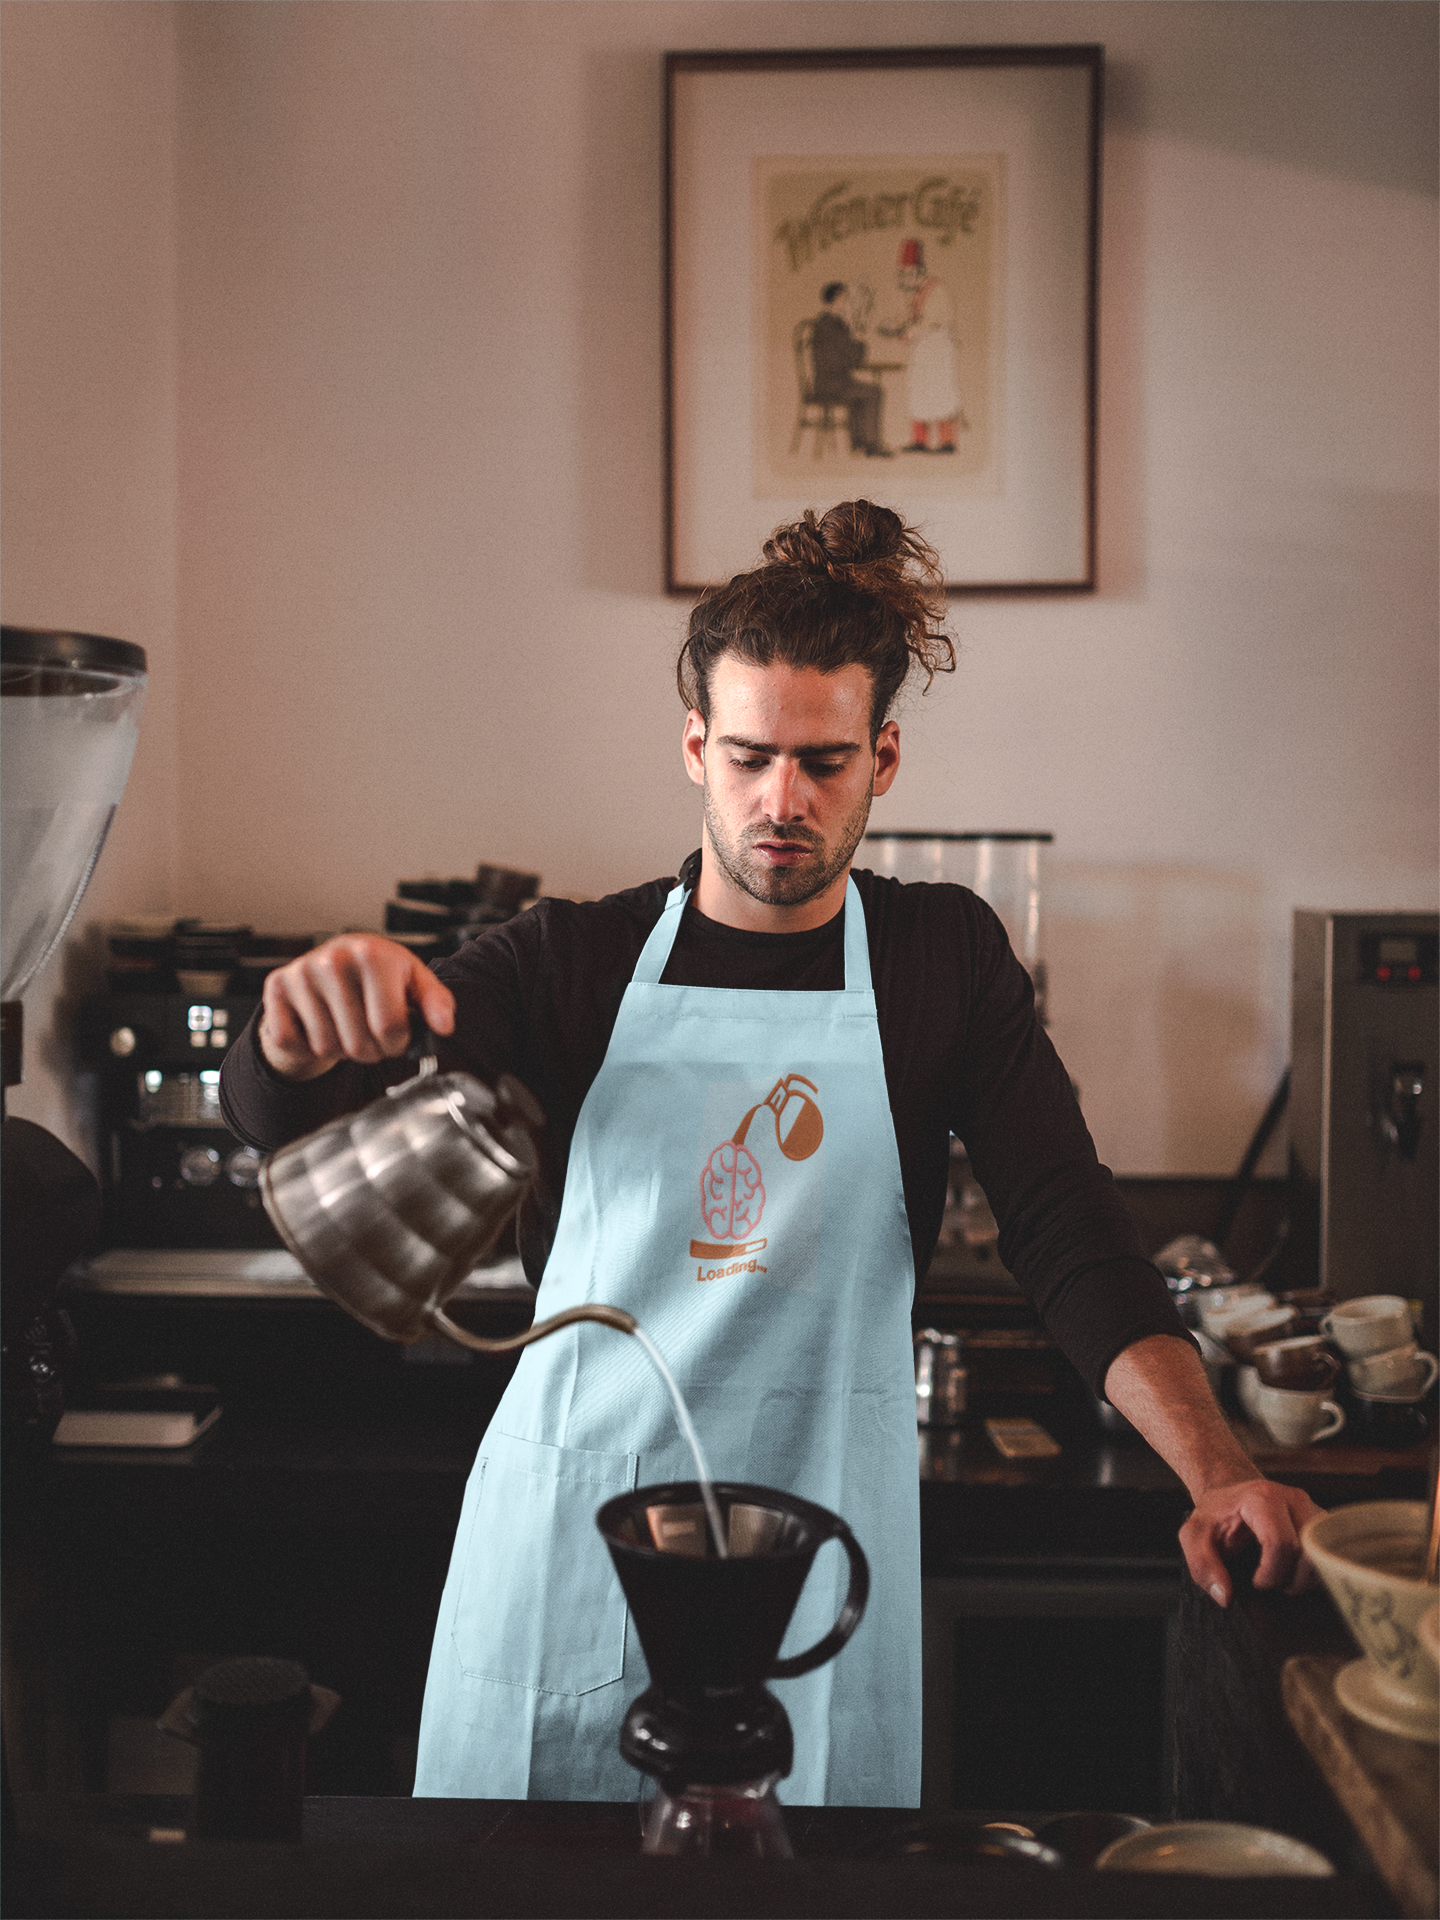 Embroidered apron with Energy design